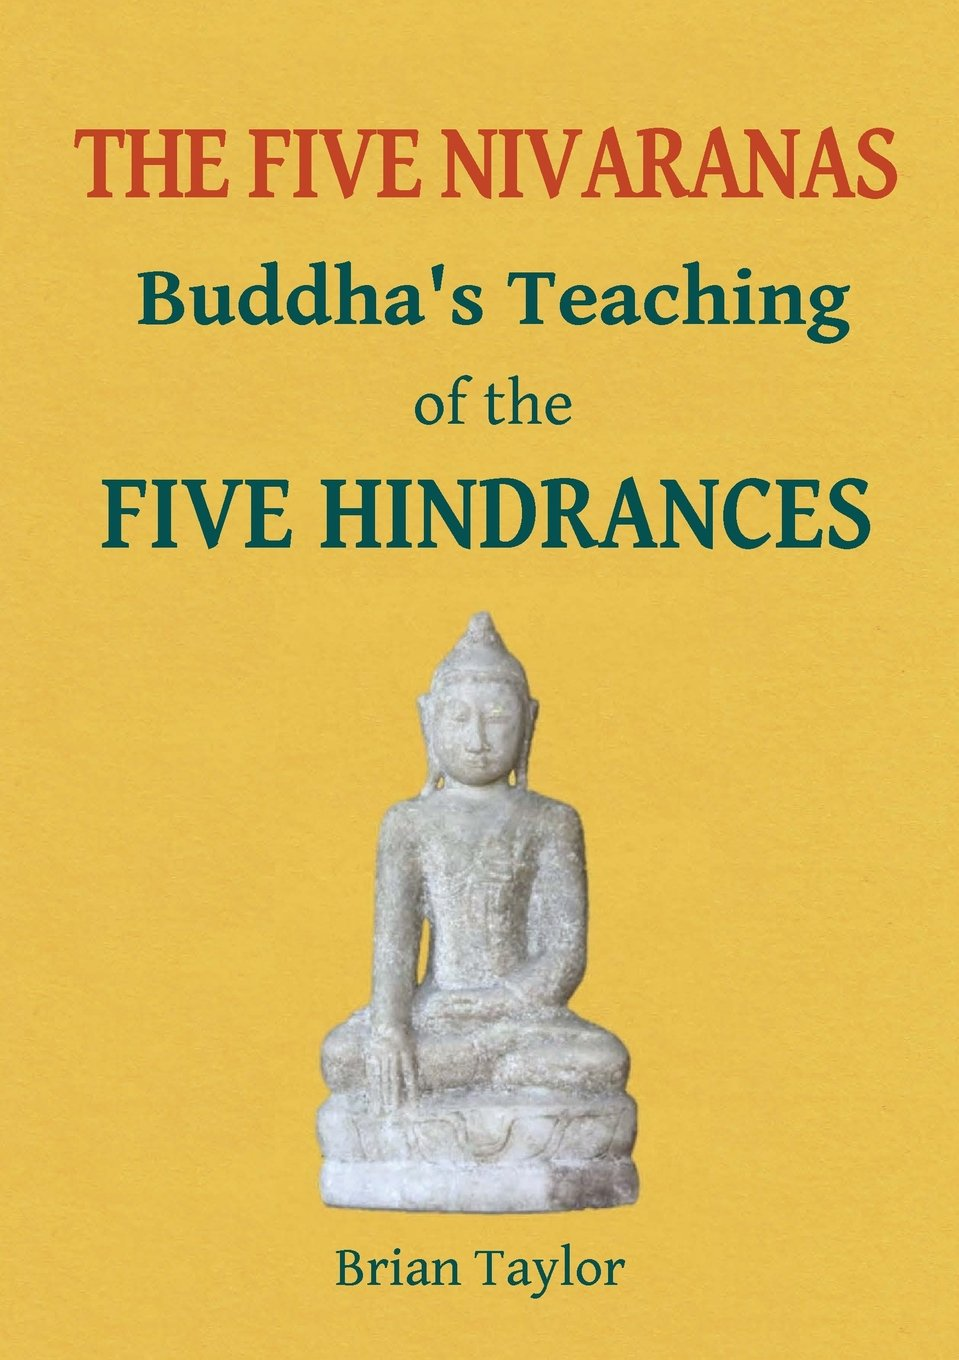 Download The Five Nivaranas: Buddha's Teaching of the Five Hindrances (Basic Buddhism) ebook